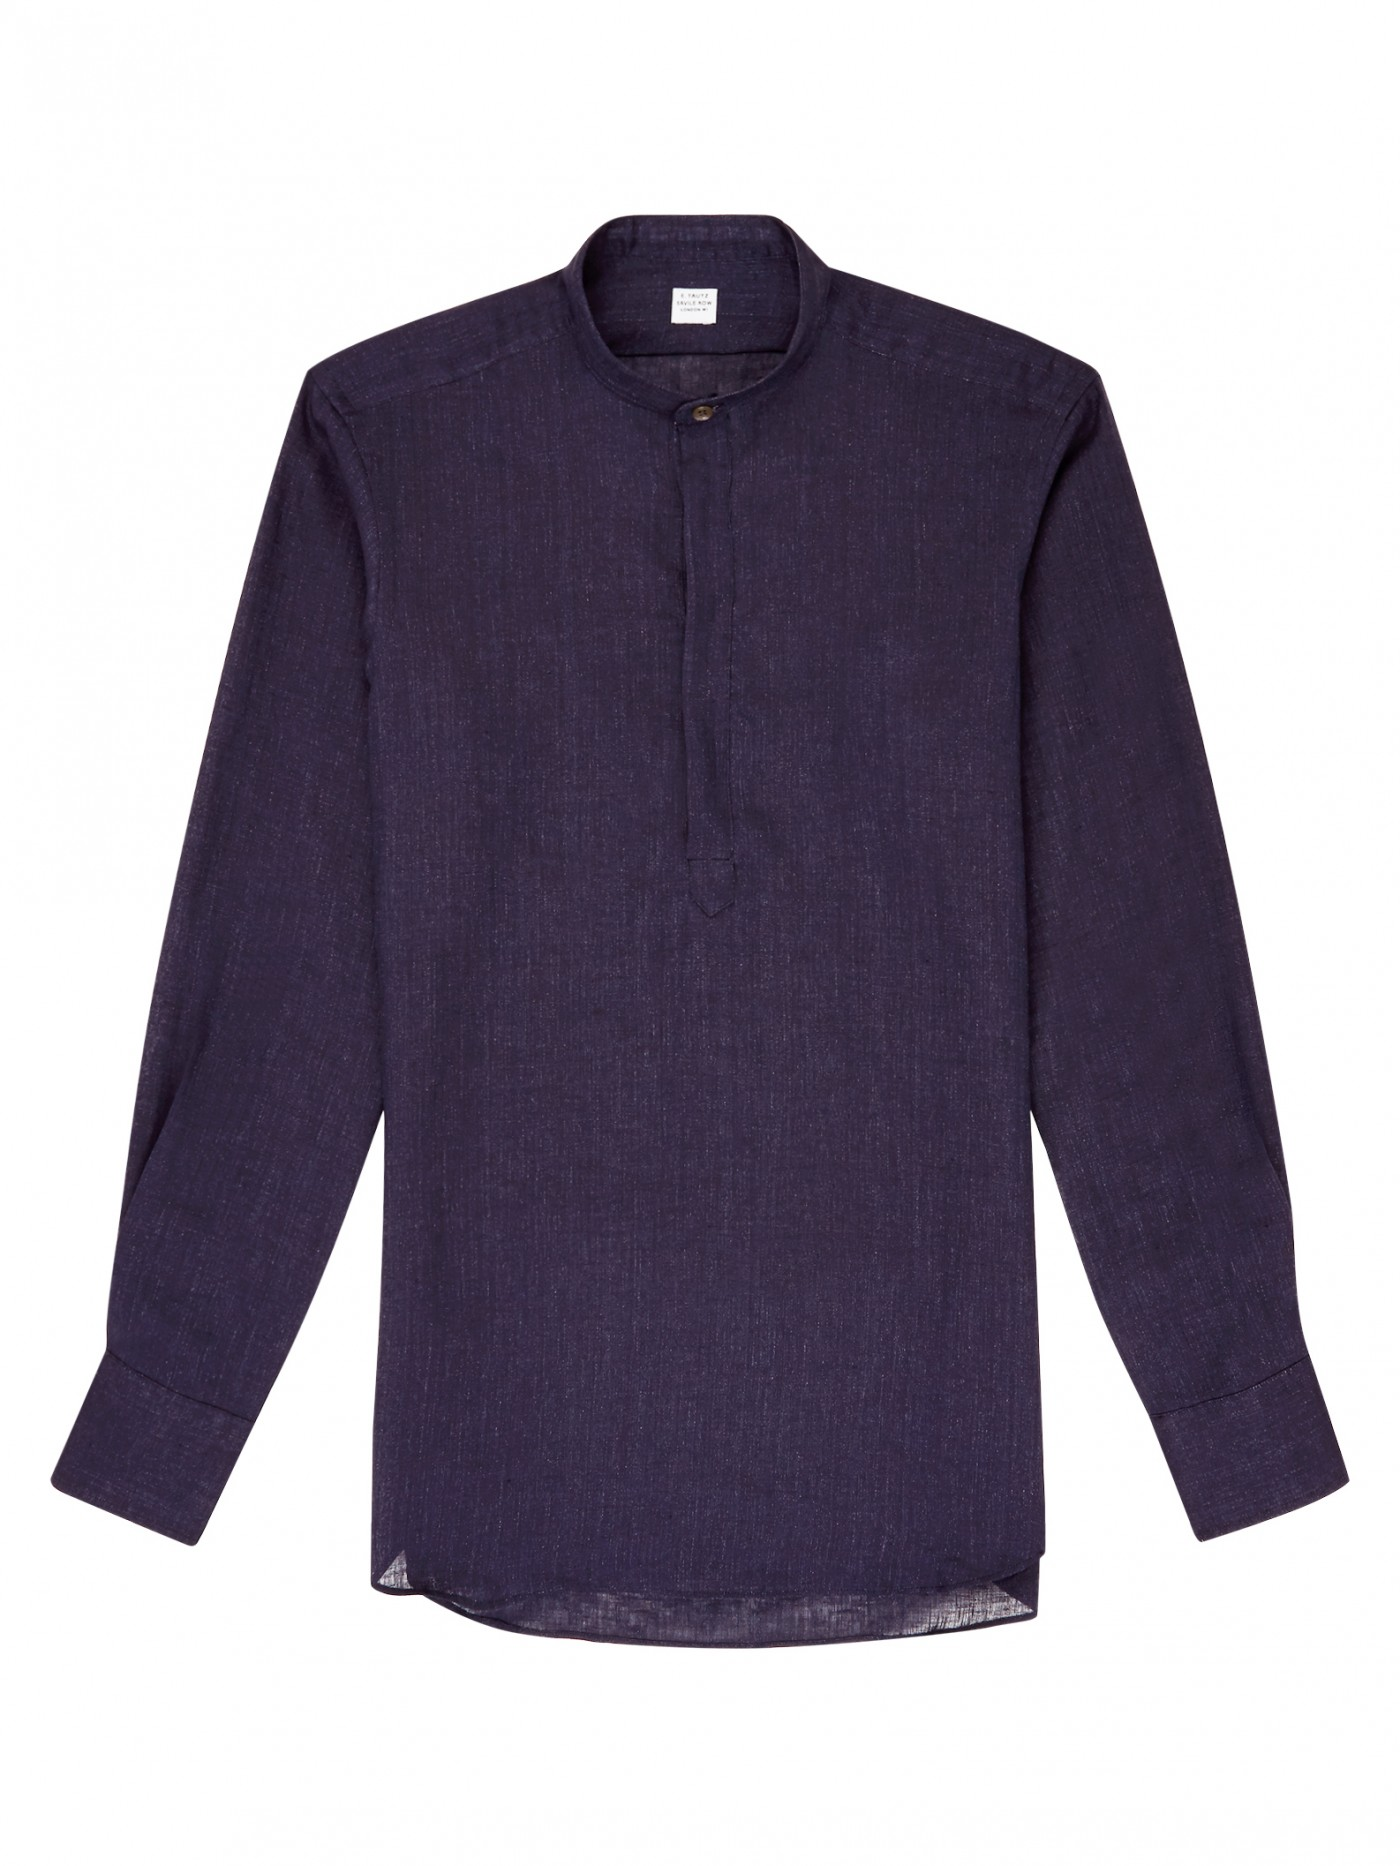 E. Tautz Navy Linen Slim Fit Grandad Collar Shirt